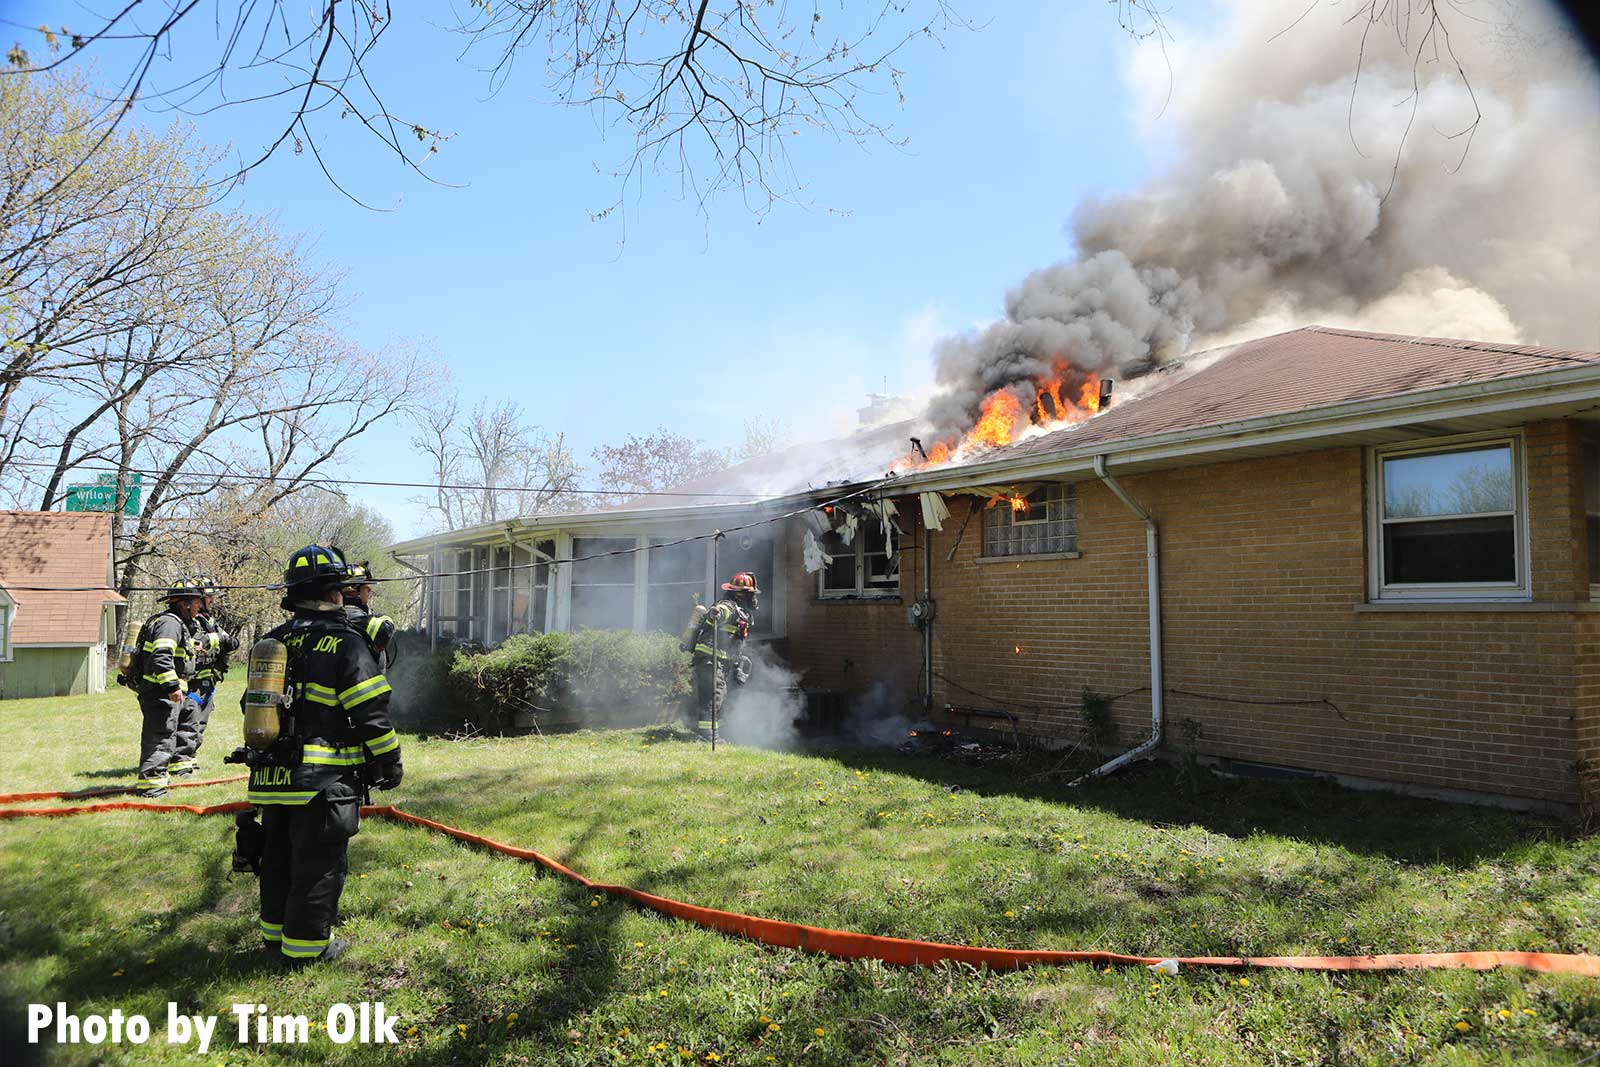 Firefighters move hose at the Northbrook house fire